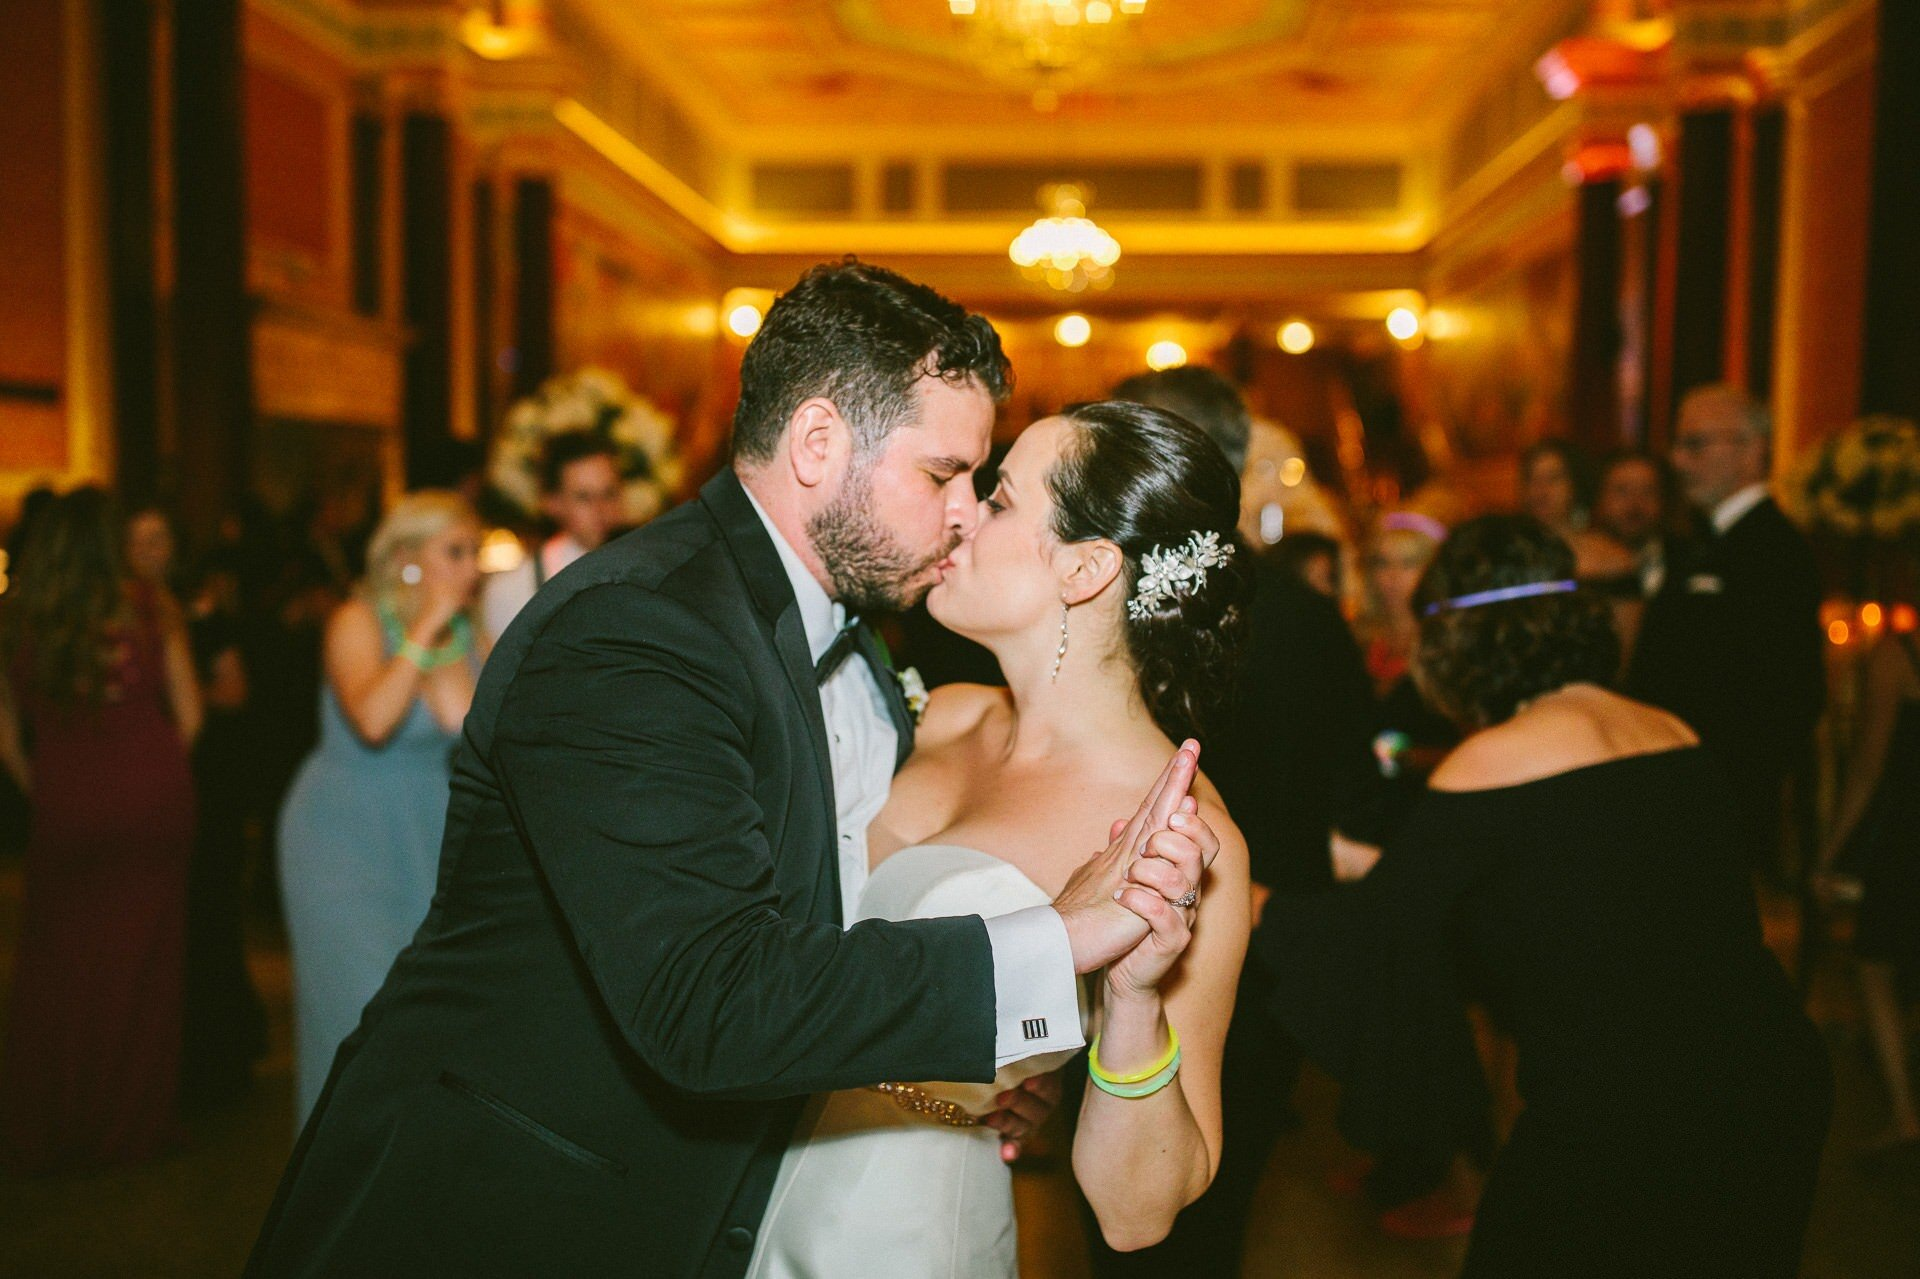 Playhouse State Theater Wedding Photographer in Cleveland 2 44.jpg